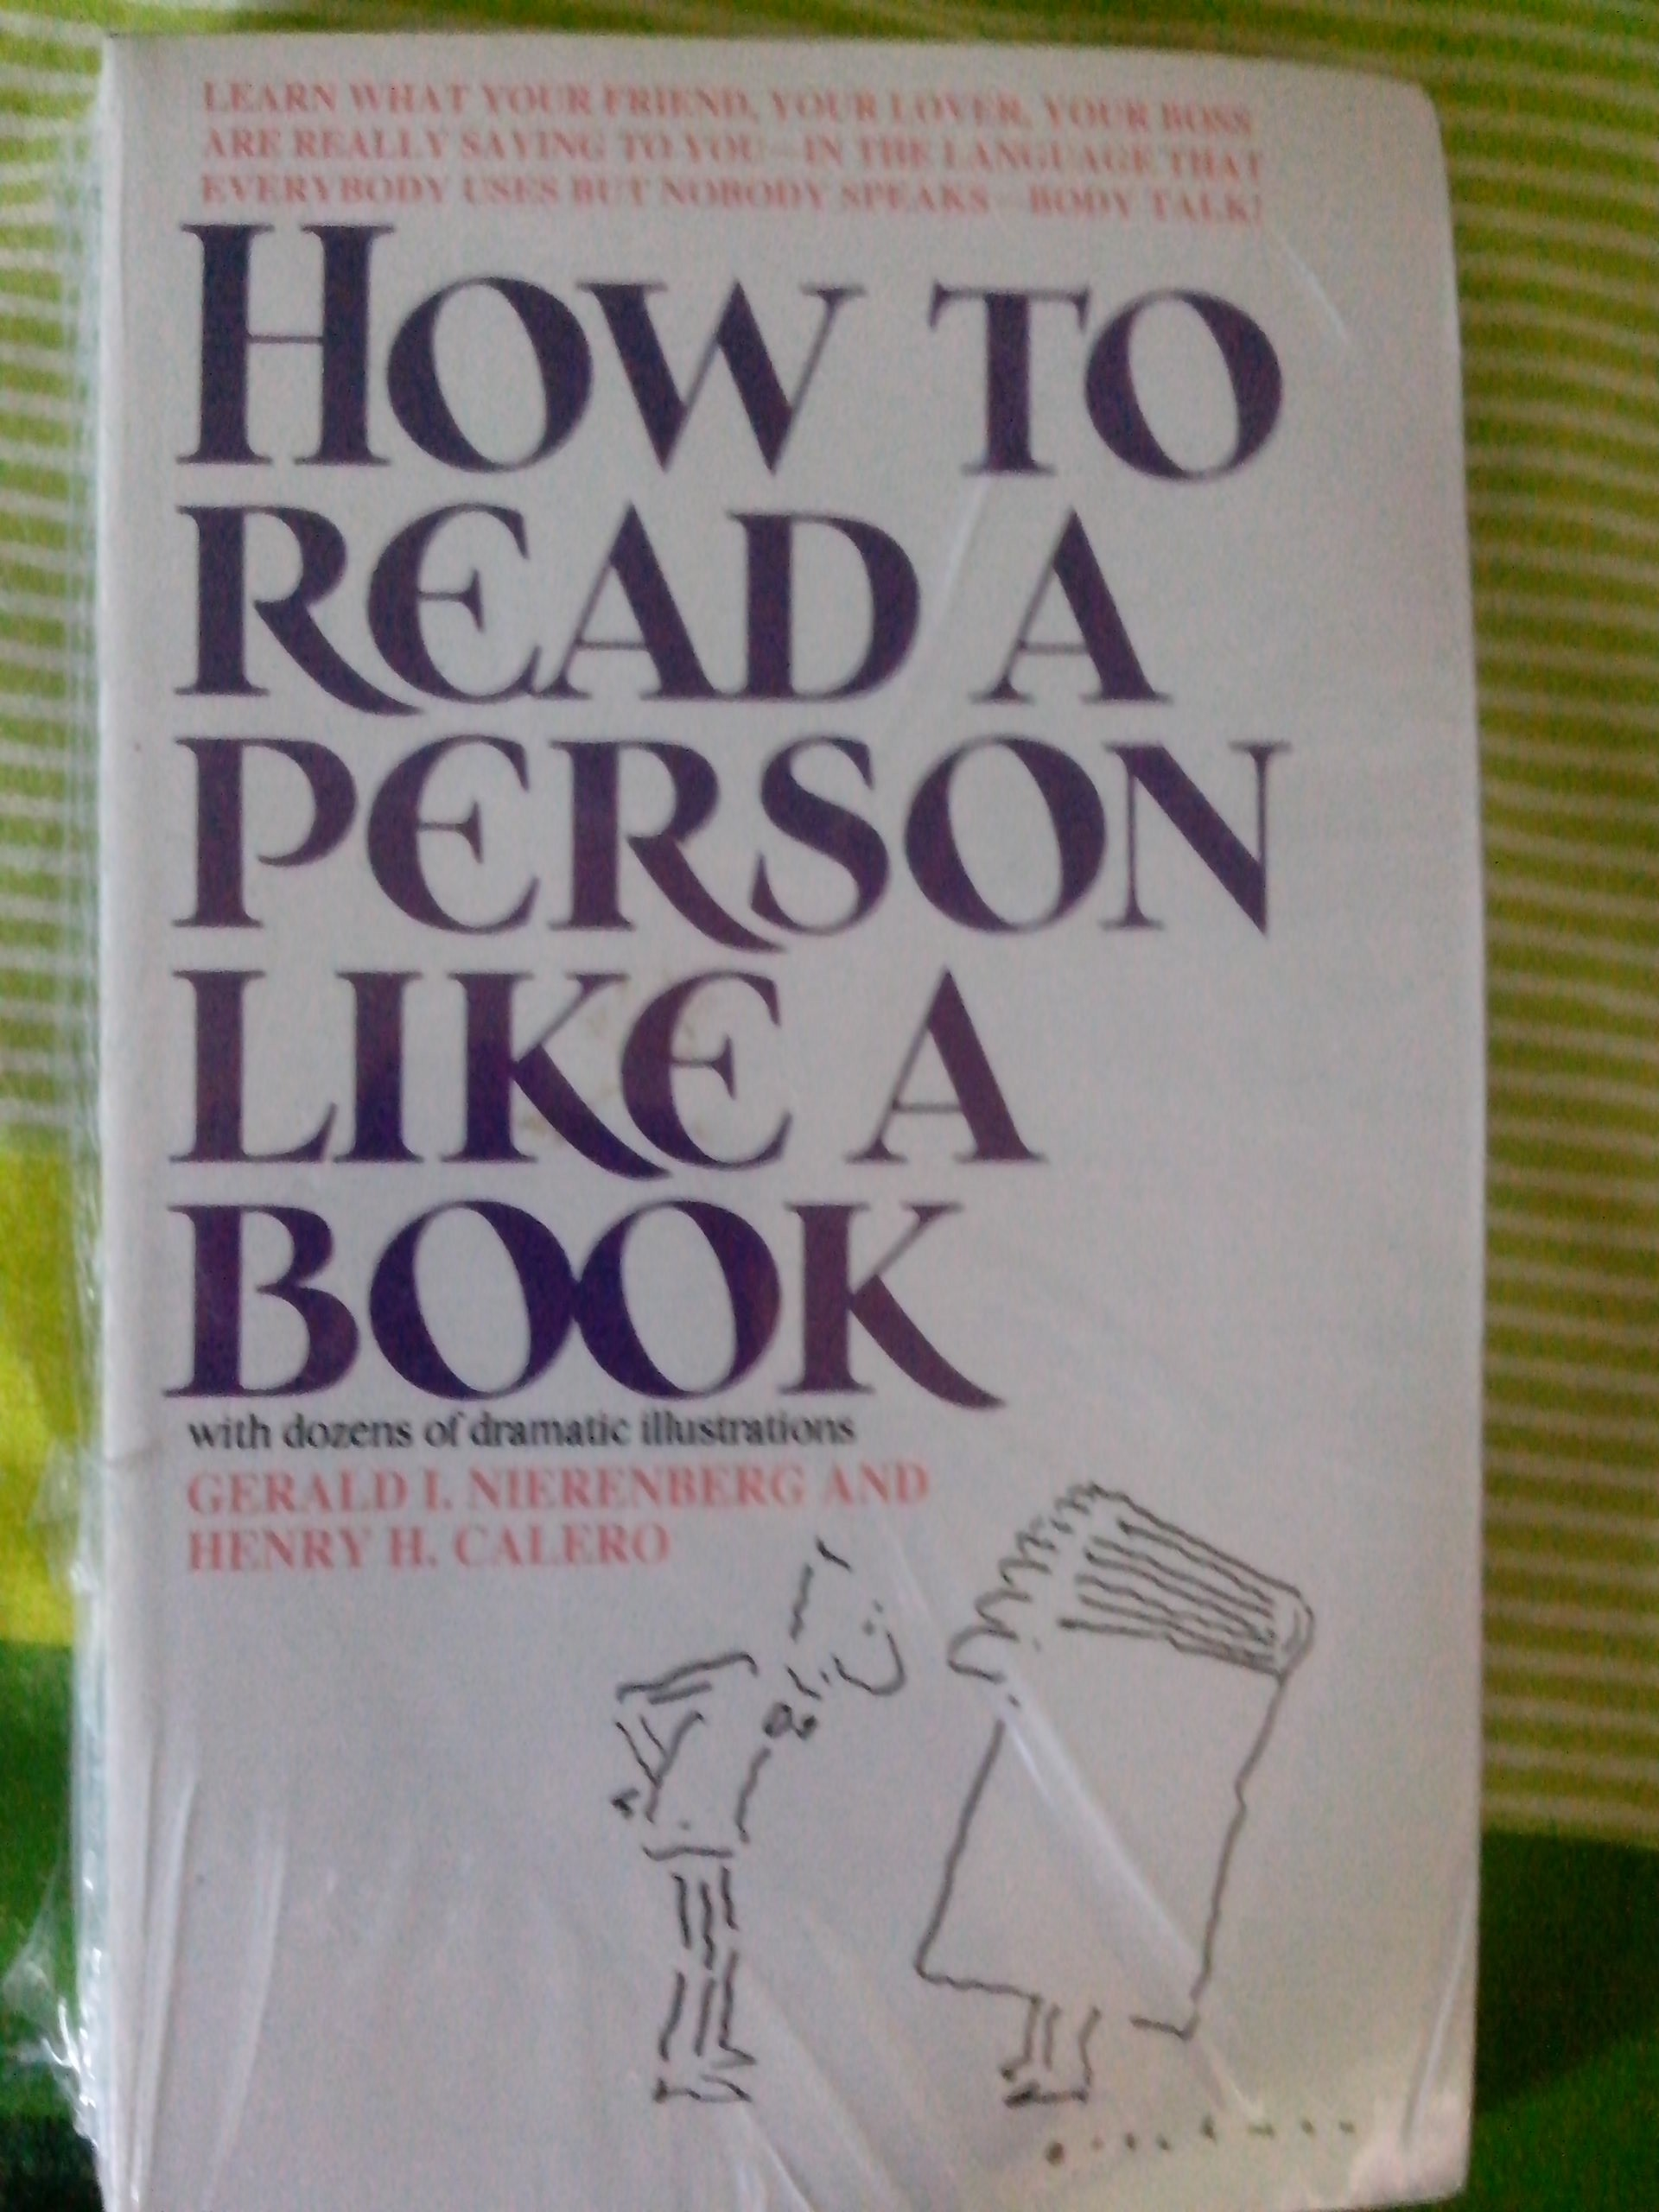 How to read a person like a book 68